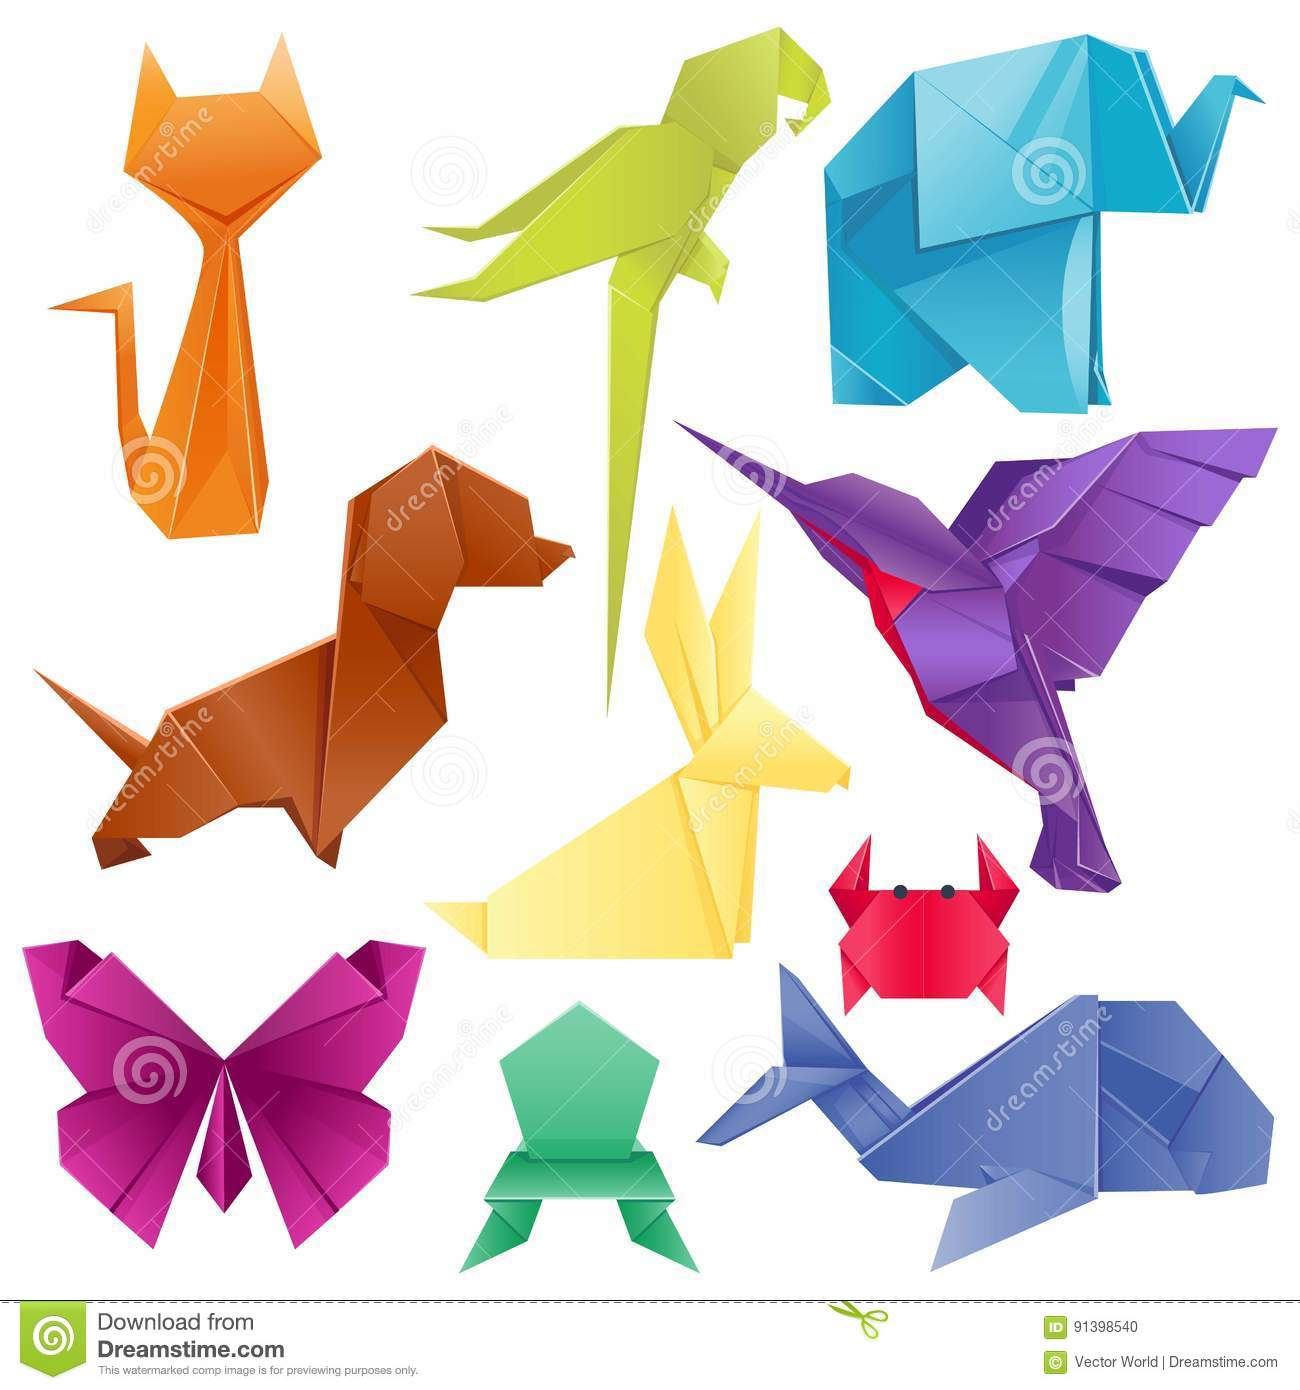 modele origami animaux origami duanimaux facile with modele origami animaux chat origami with. Black Bedroom Furniture Sets. Home Design Ideas